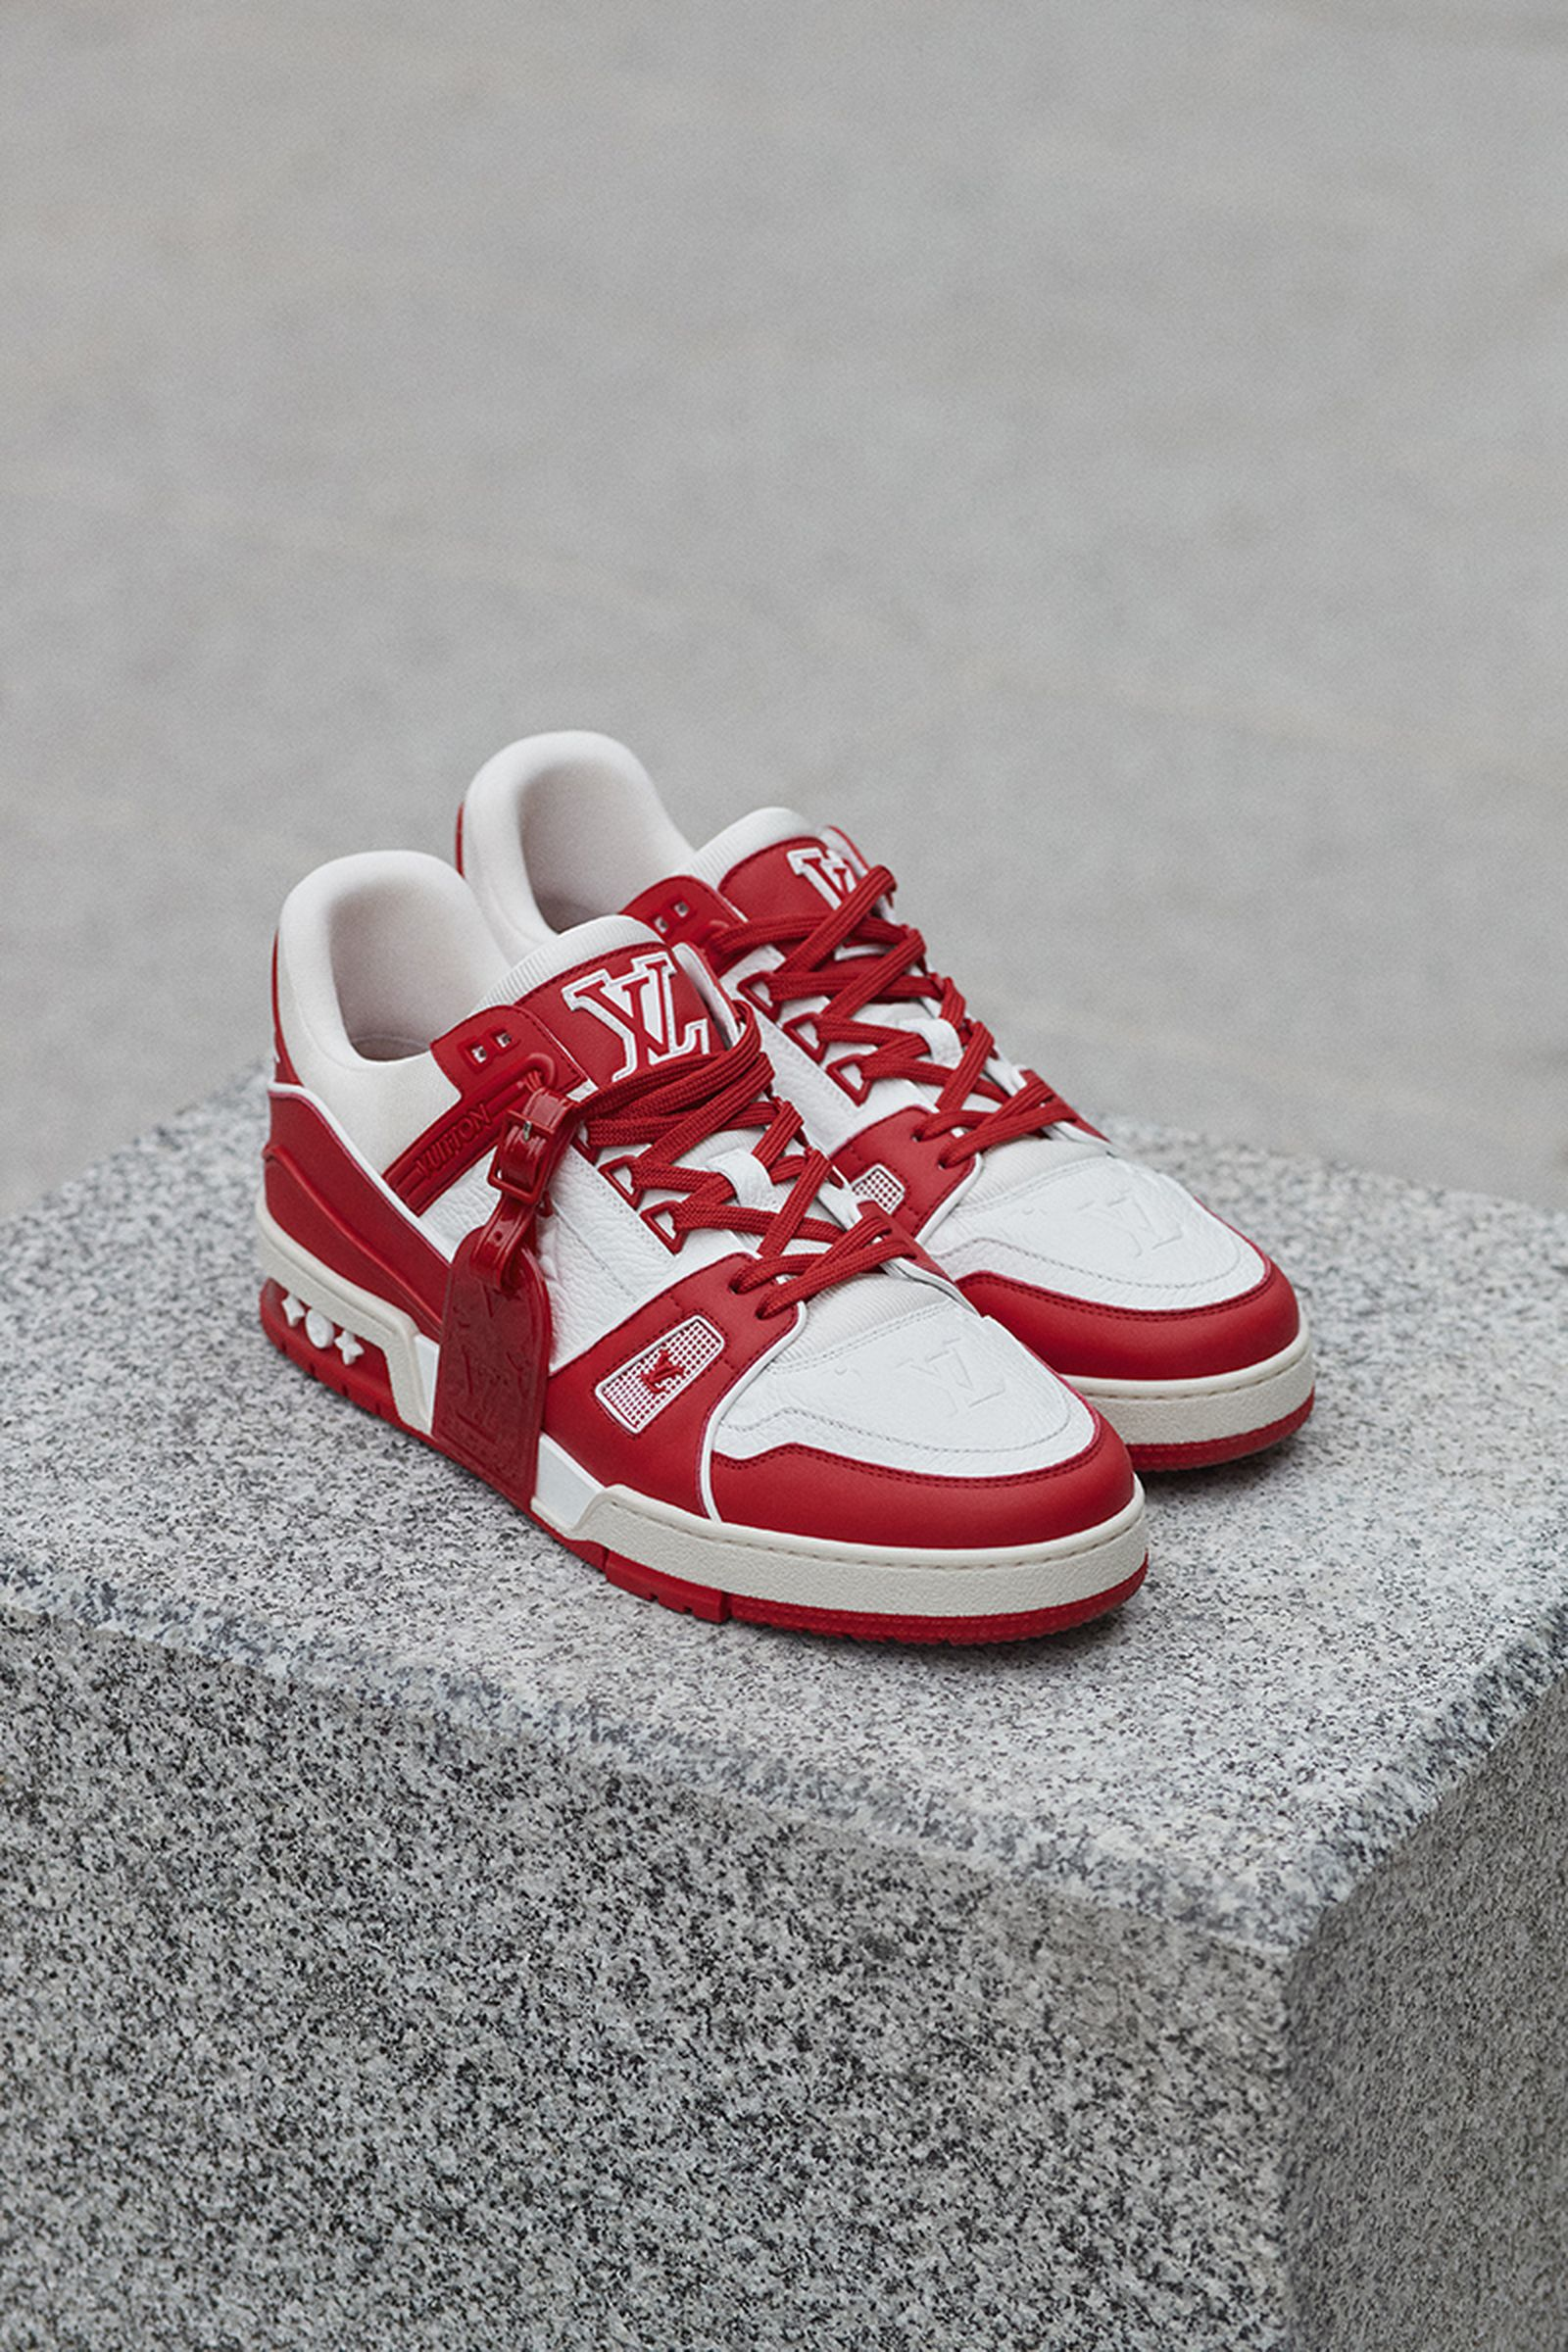 louis-vuitton-red-lv-trainer-release-date-price-03